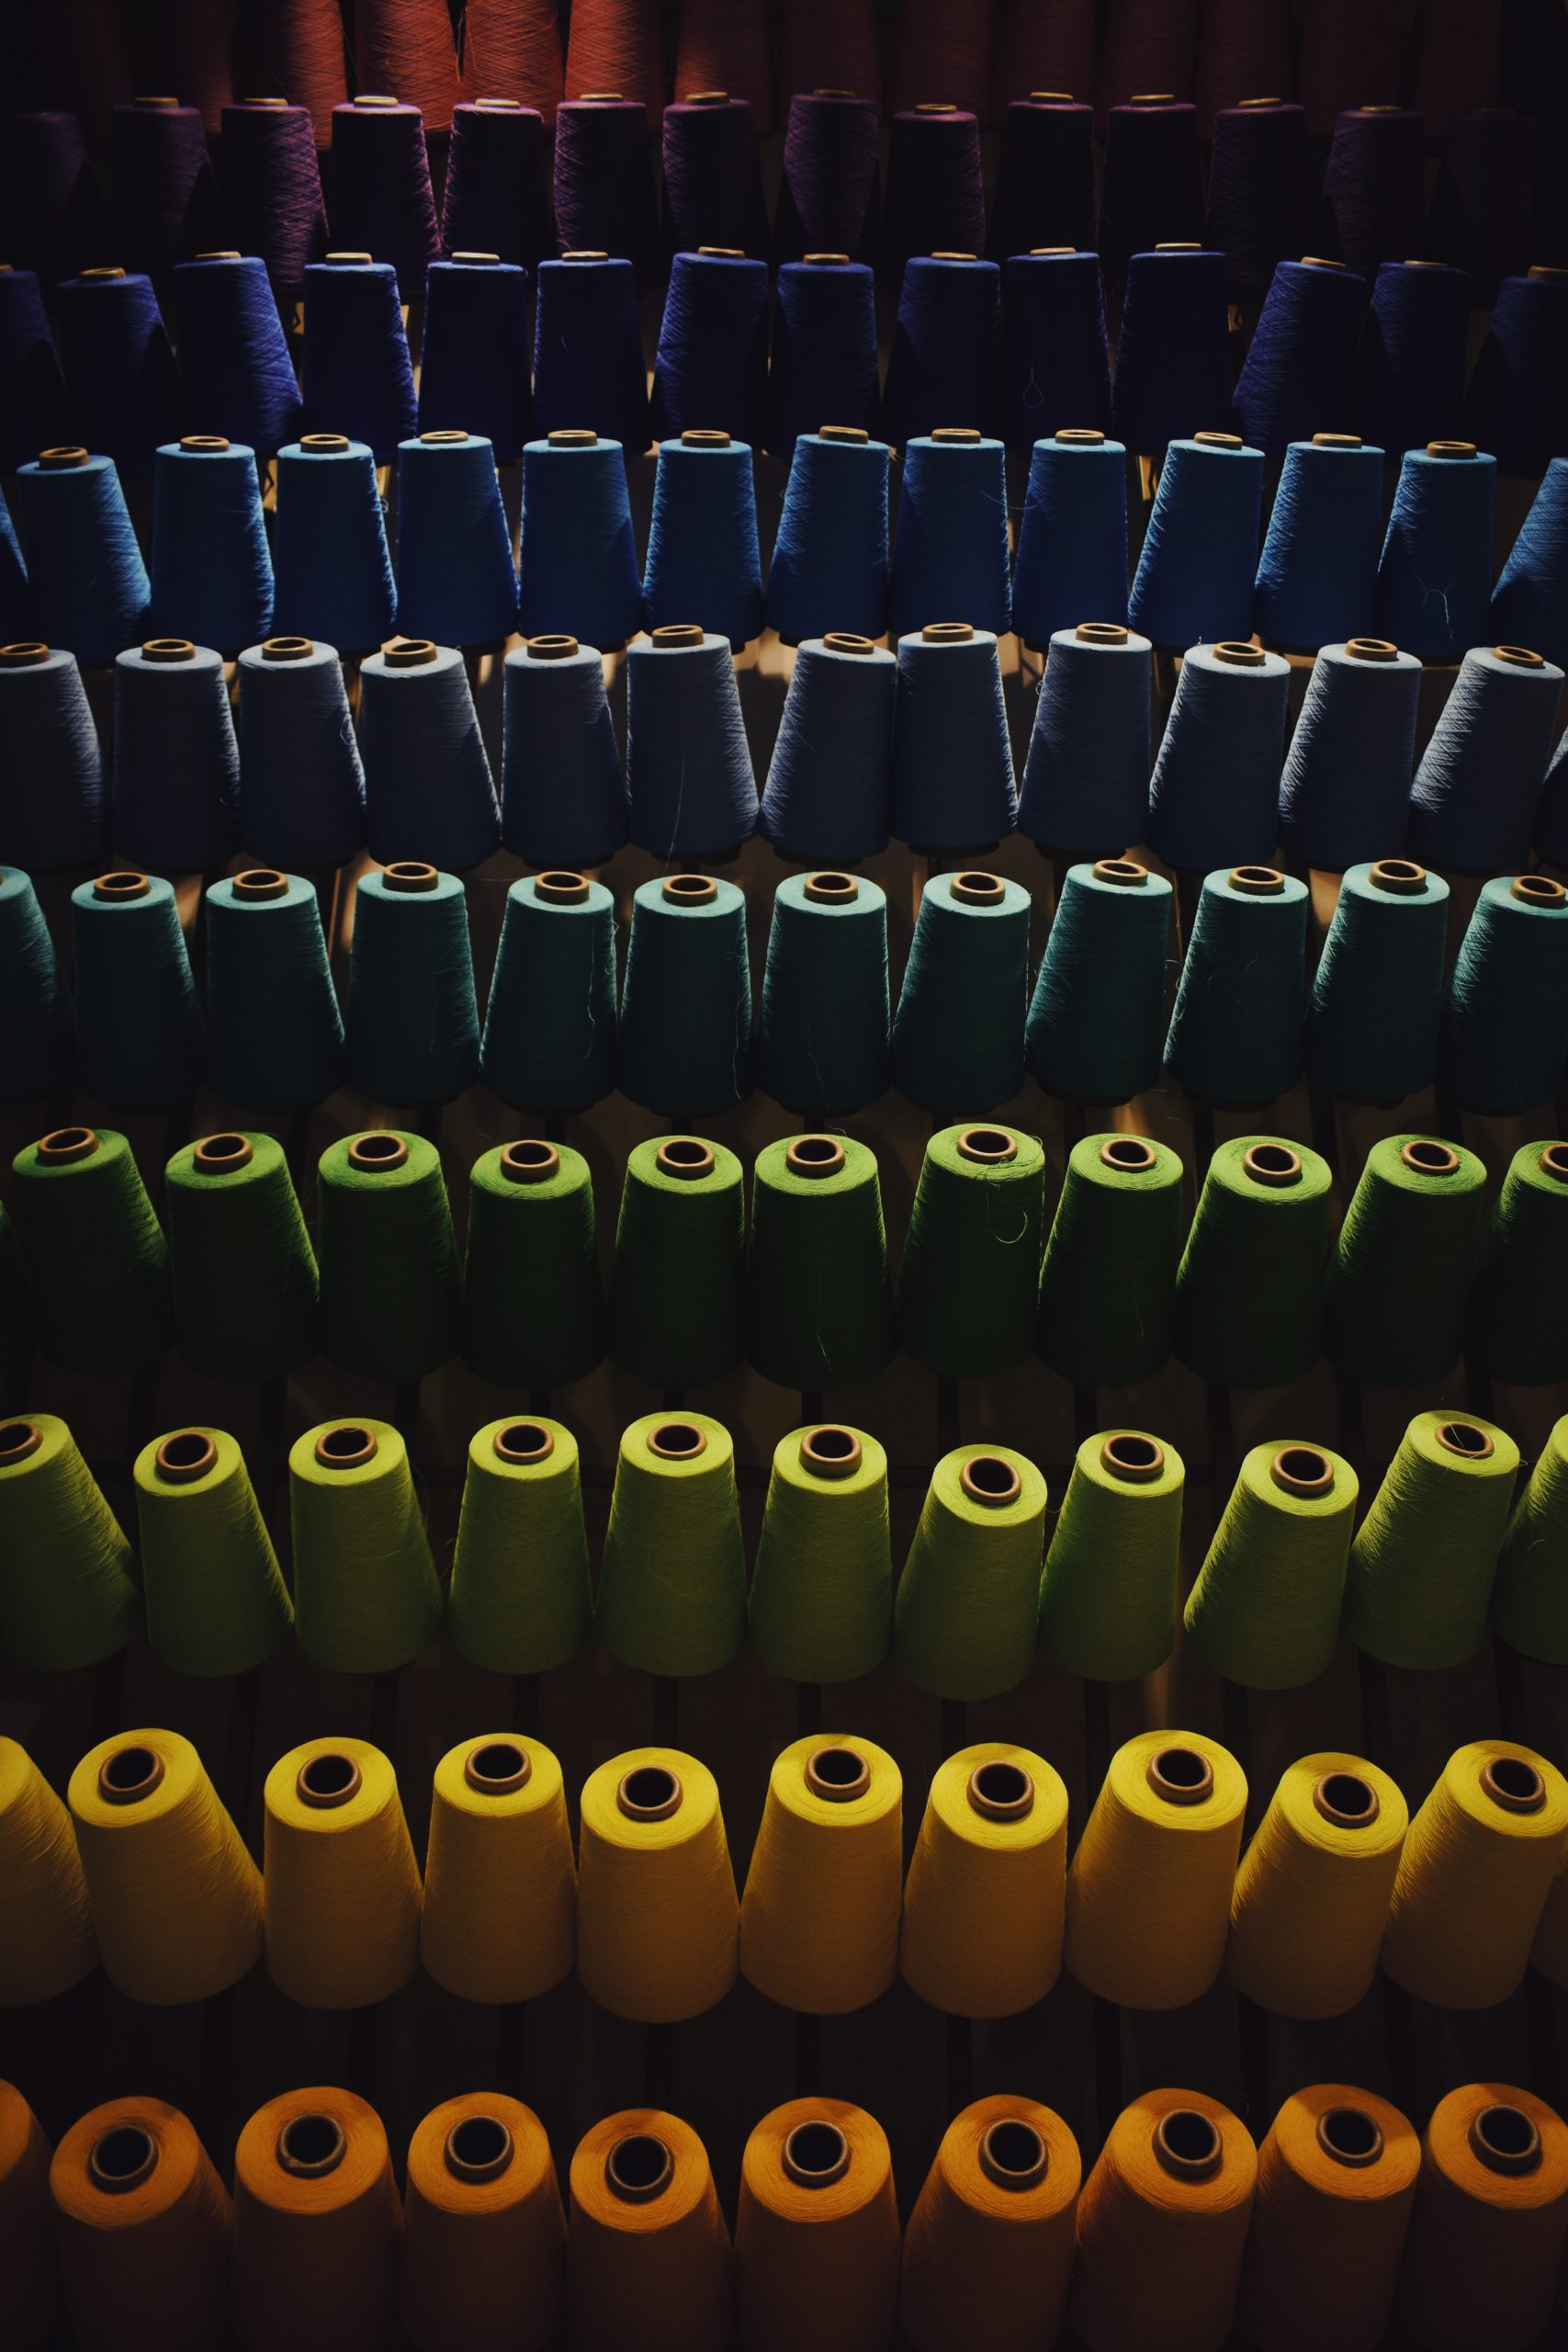 Rows of spools of colorful thread, each row another color, in a rainbow gradient.